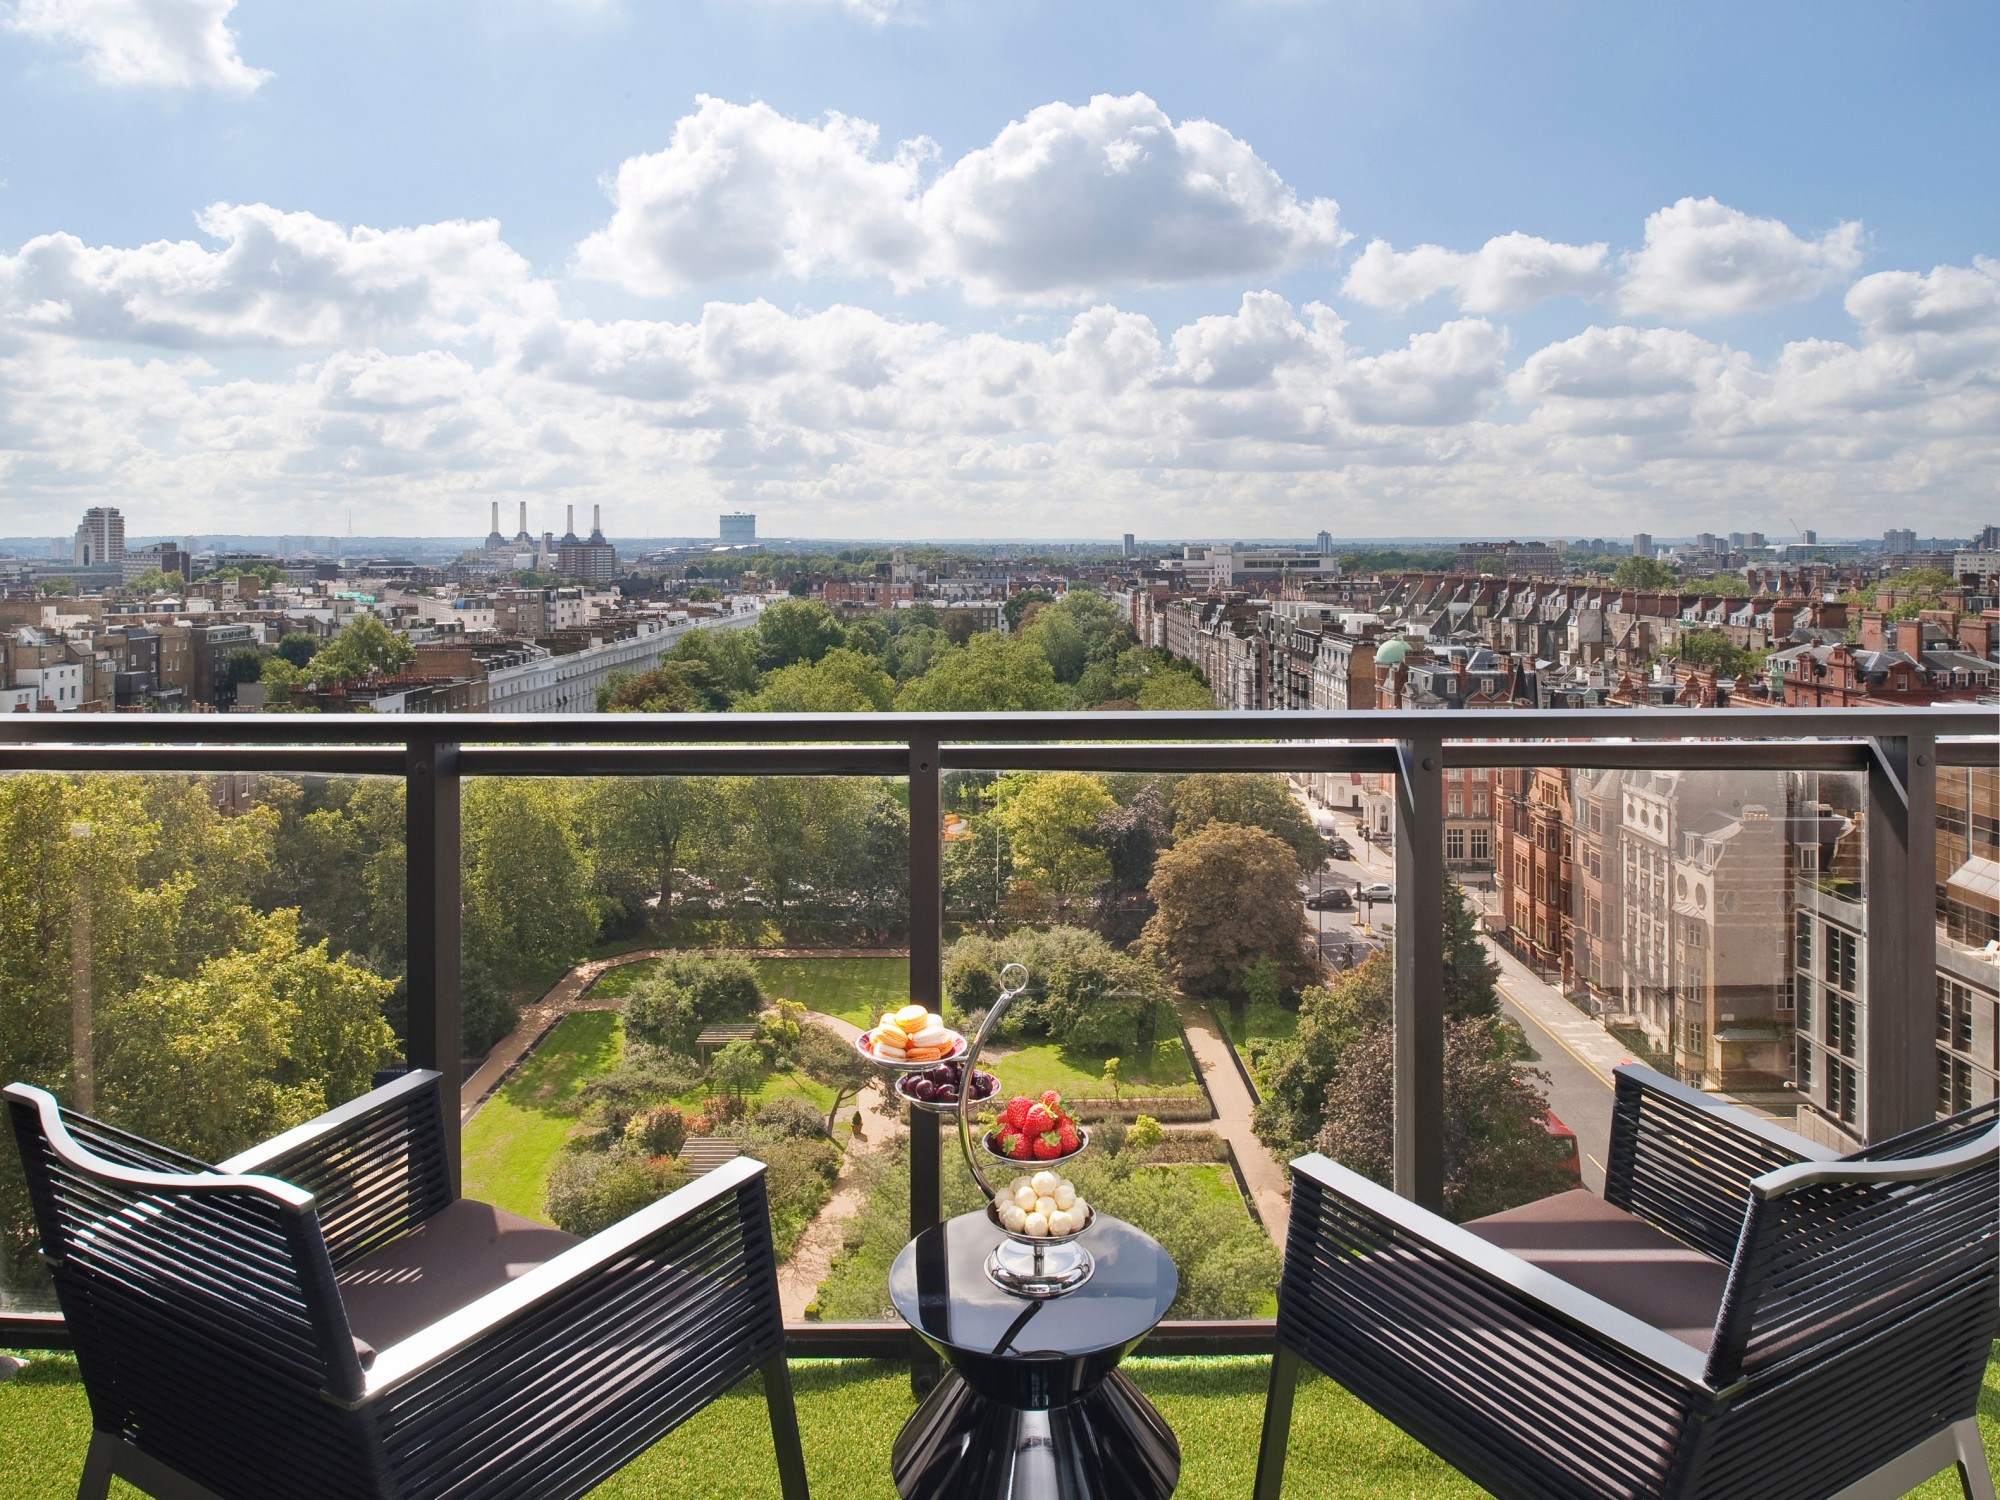 The 10 Best Green Hotels In London Let S Travel Green